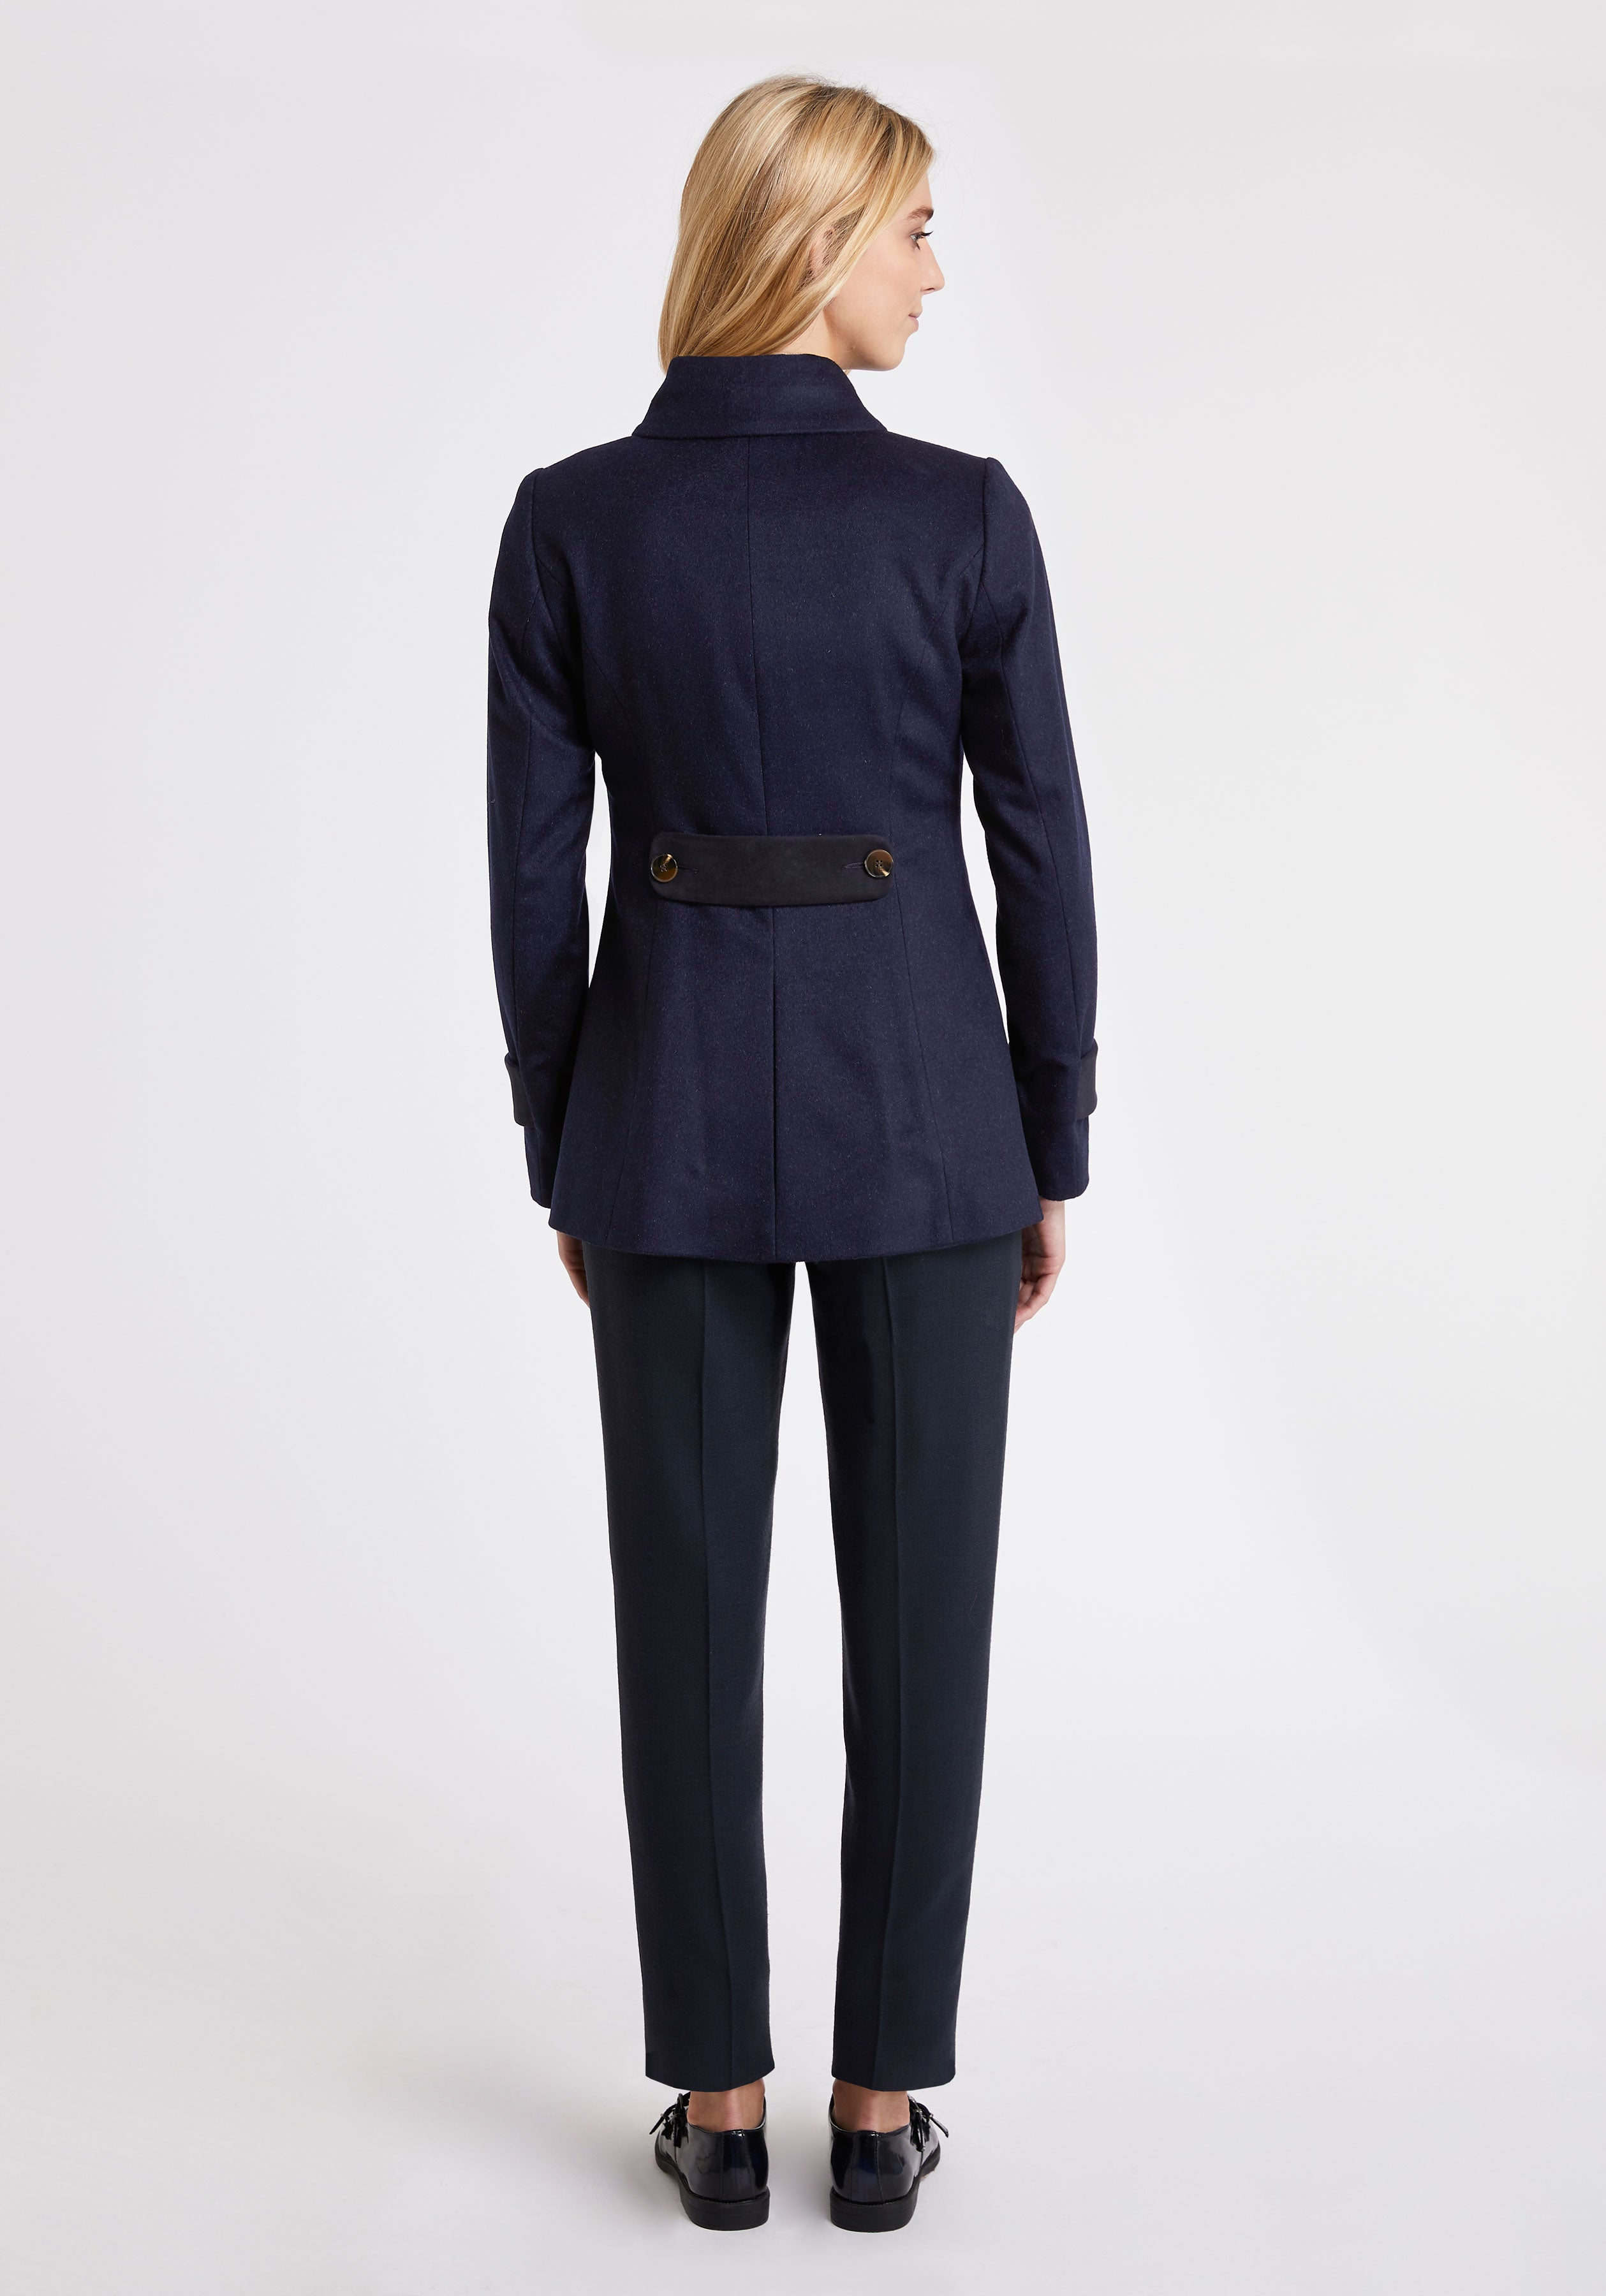 Hendre Jacket in Navy Cashmere